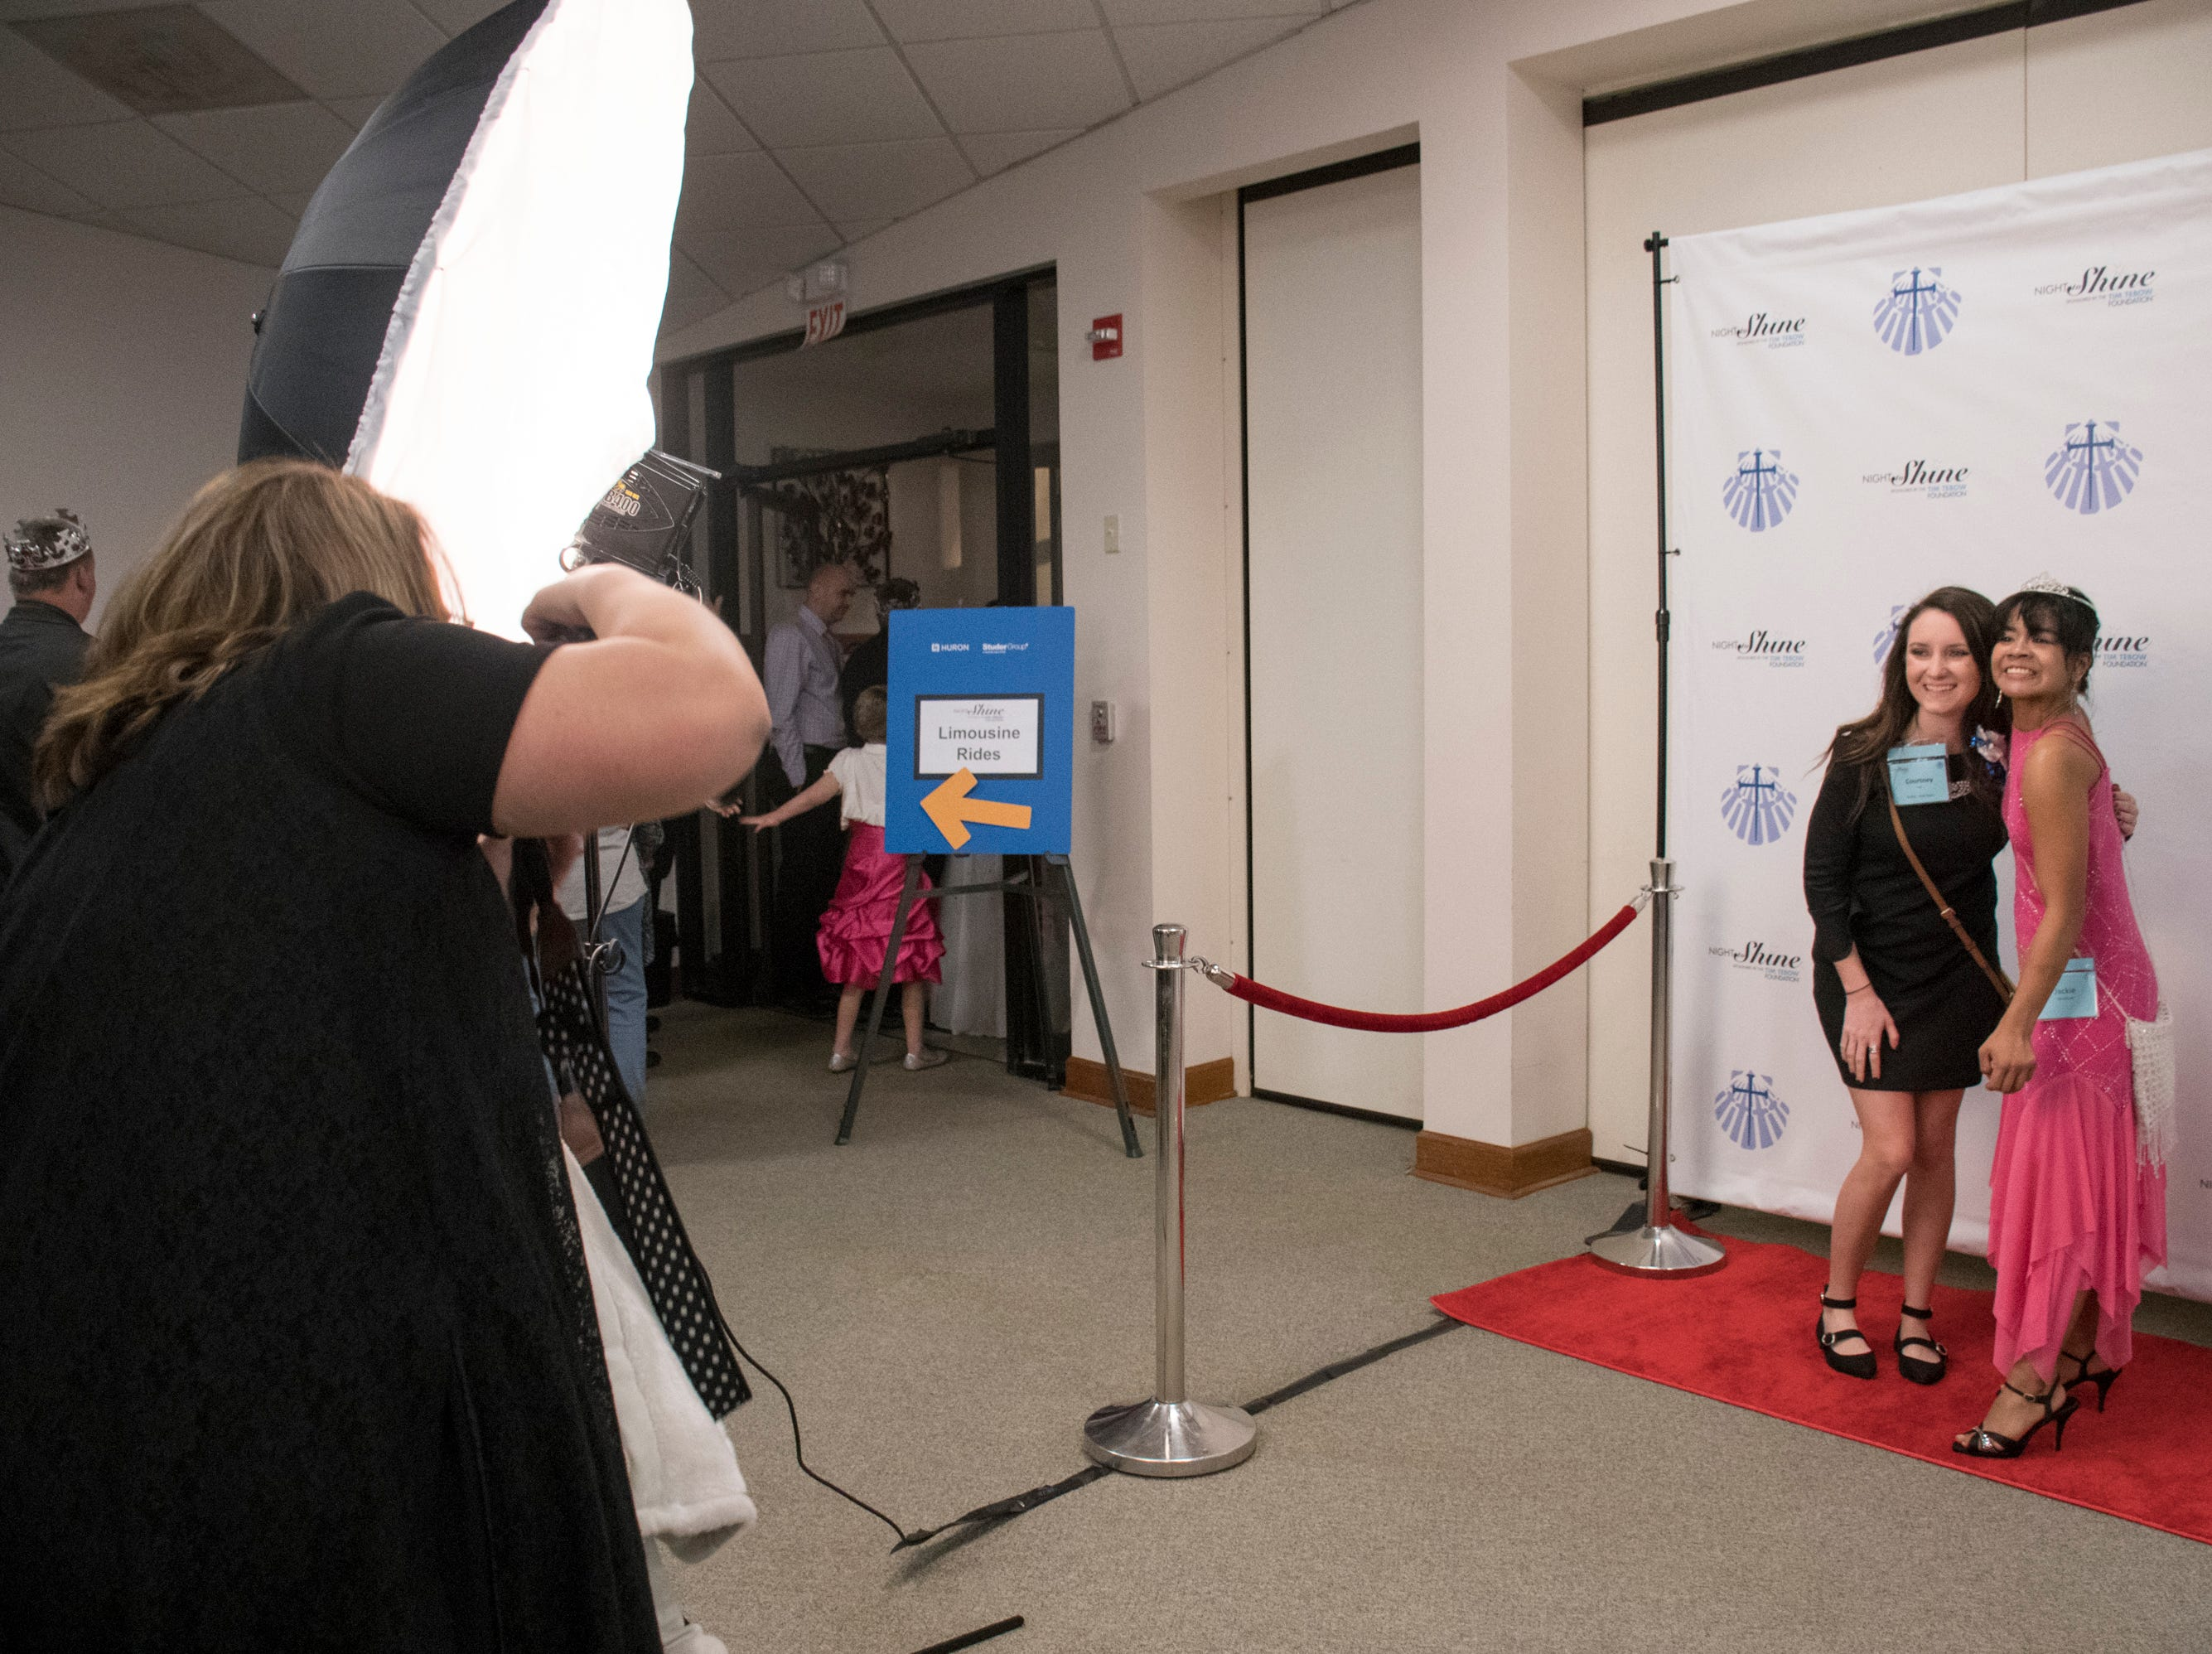 Courtney Hall, left, and Jackie Hunnicutt get their photo taken at the beginning of the Night to Shine prom for people with special needs sponsored by the Tim Tebow Foundation at Perdido Bay United Methodist Church in Pensacola on Friday, February 8, 2019.